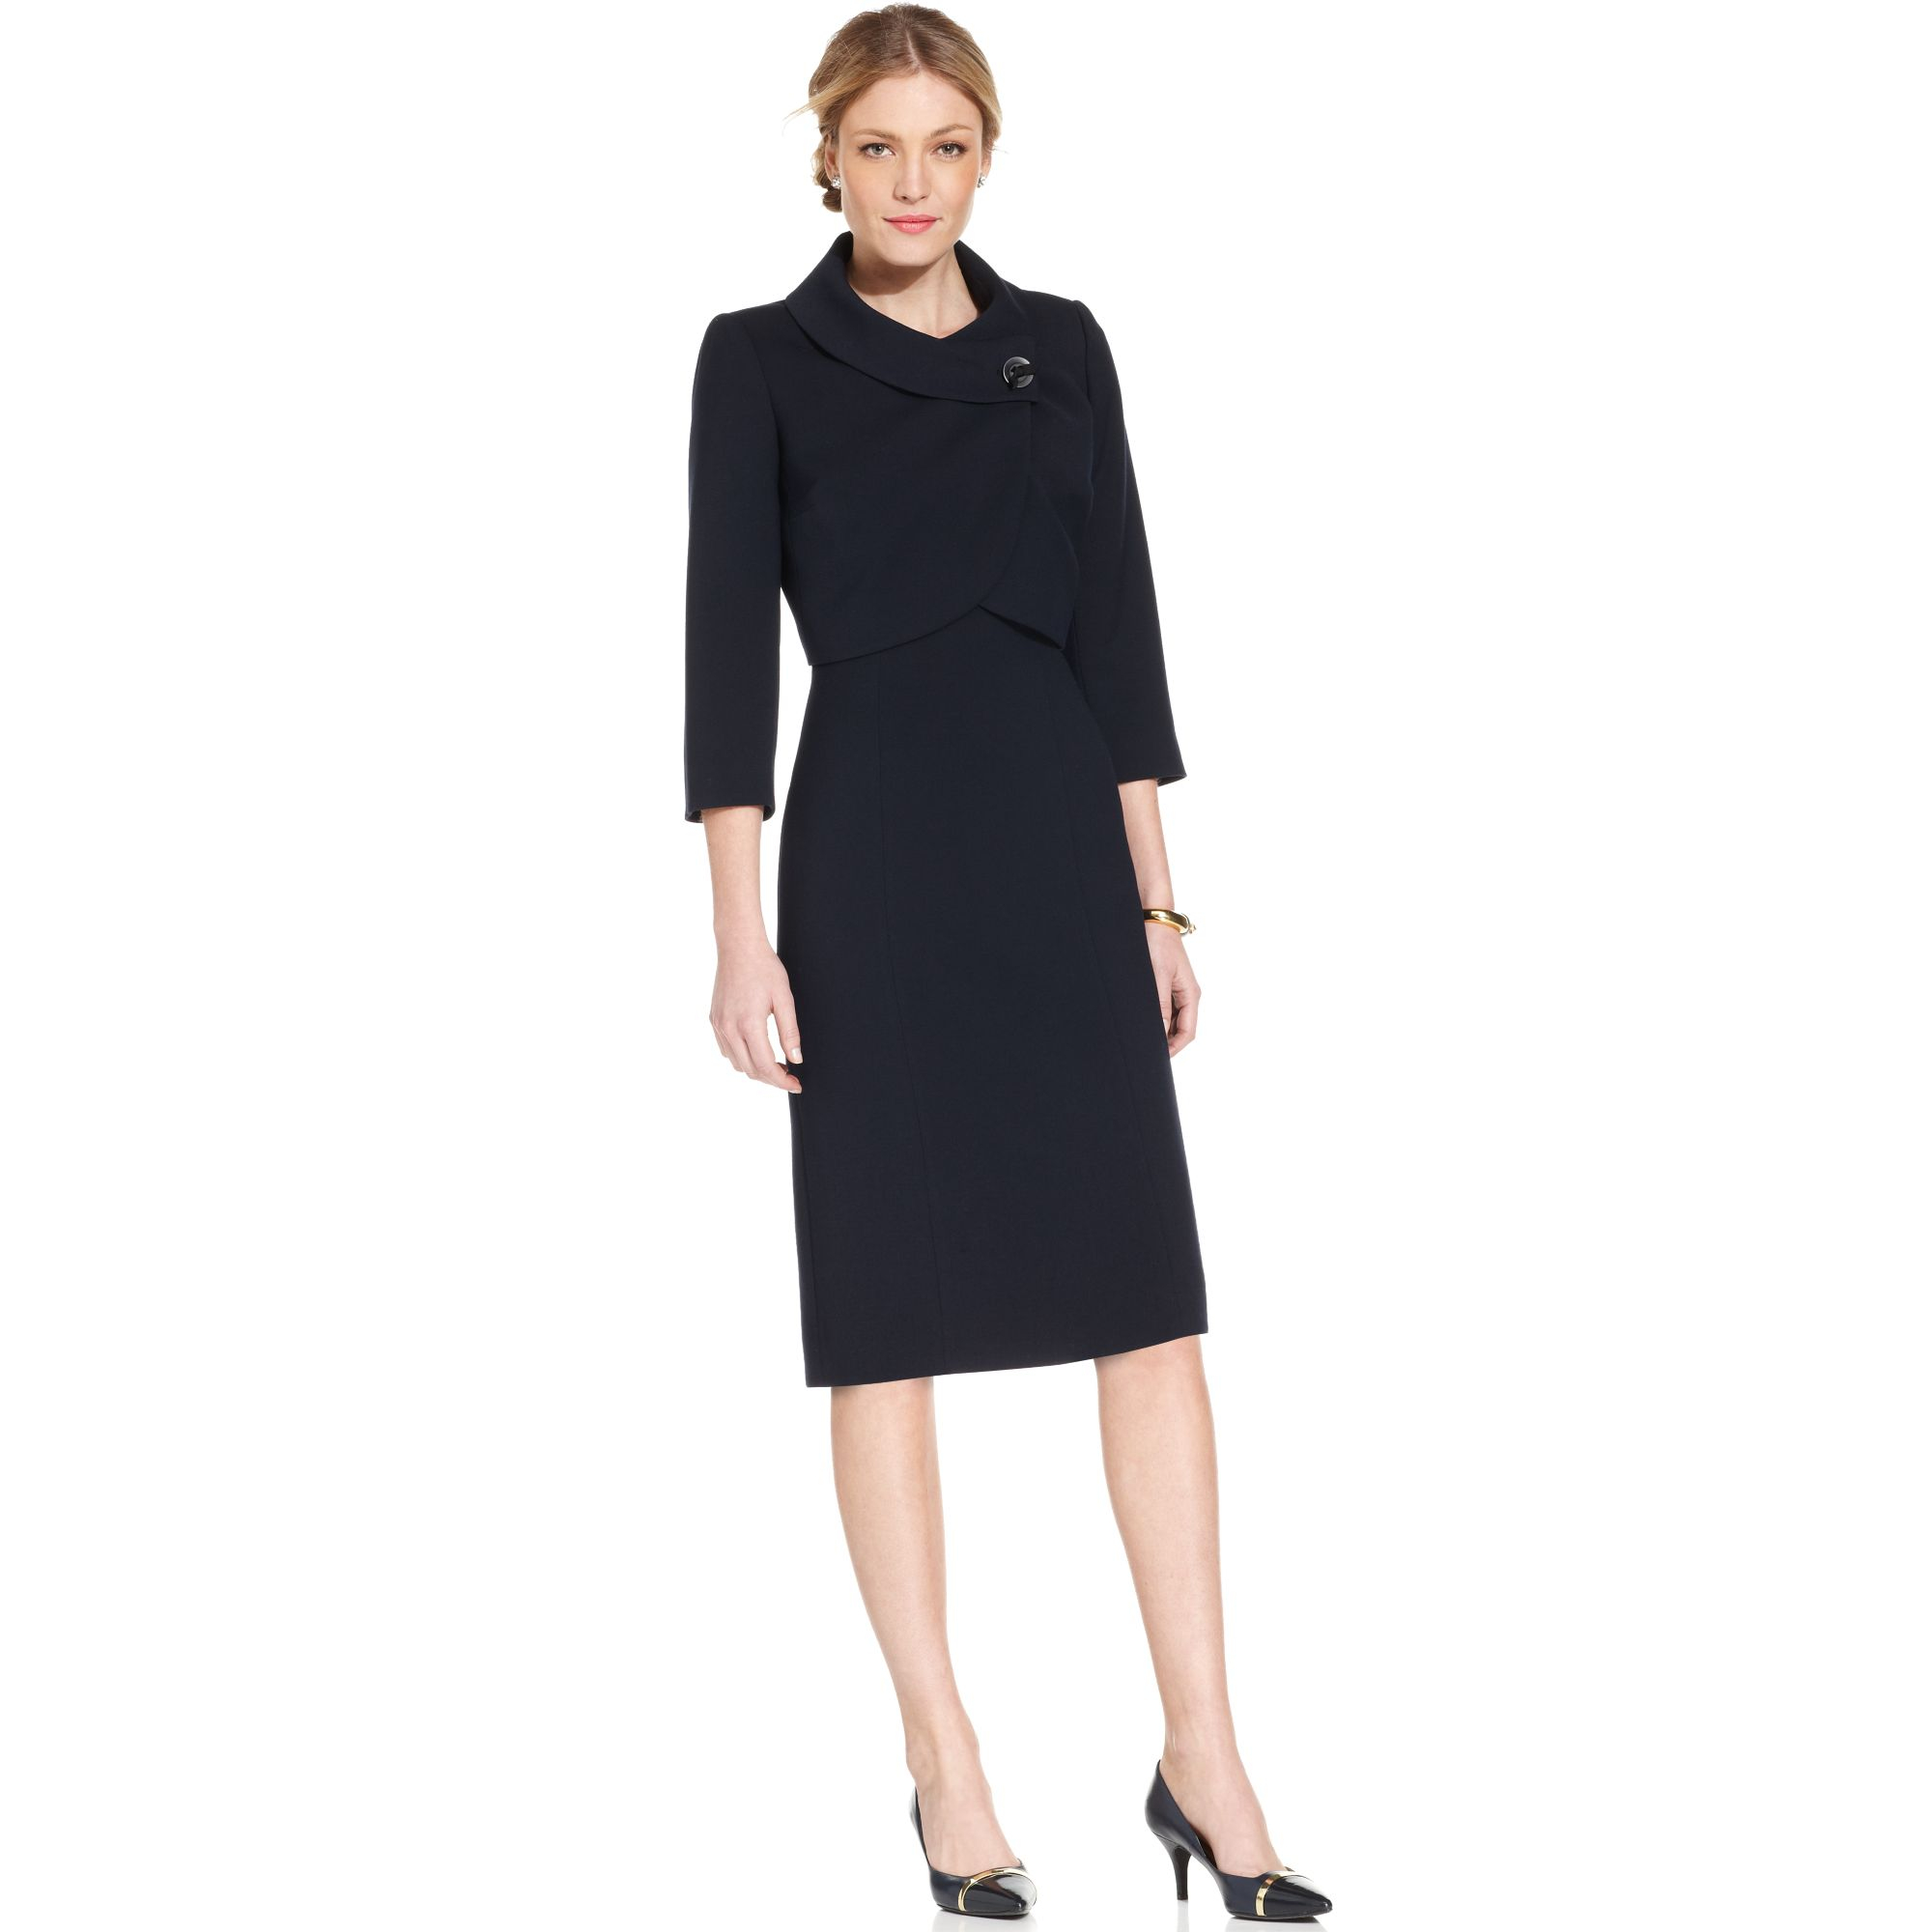 Every day can be a special occasion with women's dresses It can be nerve-wracking to have a special event like a wedding or party to attend, but no idea what to wear. Kmart has dresses for women that work for any type of occasion.